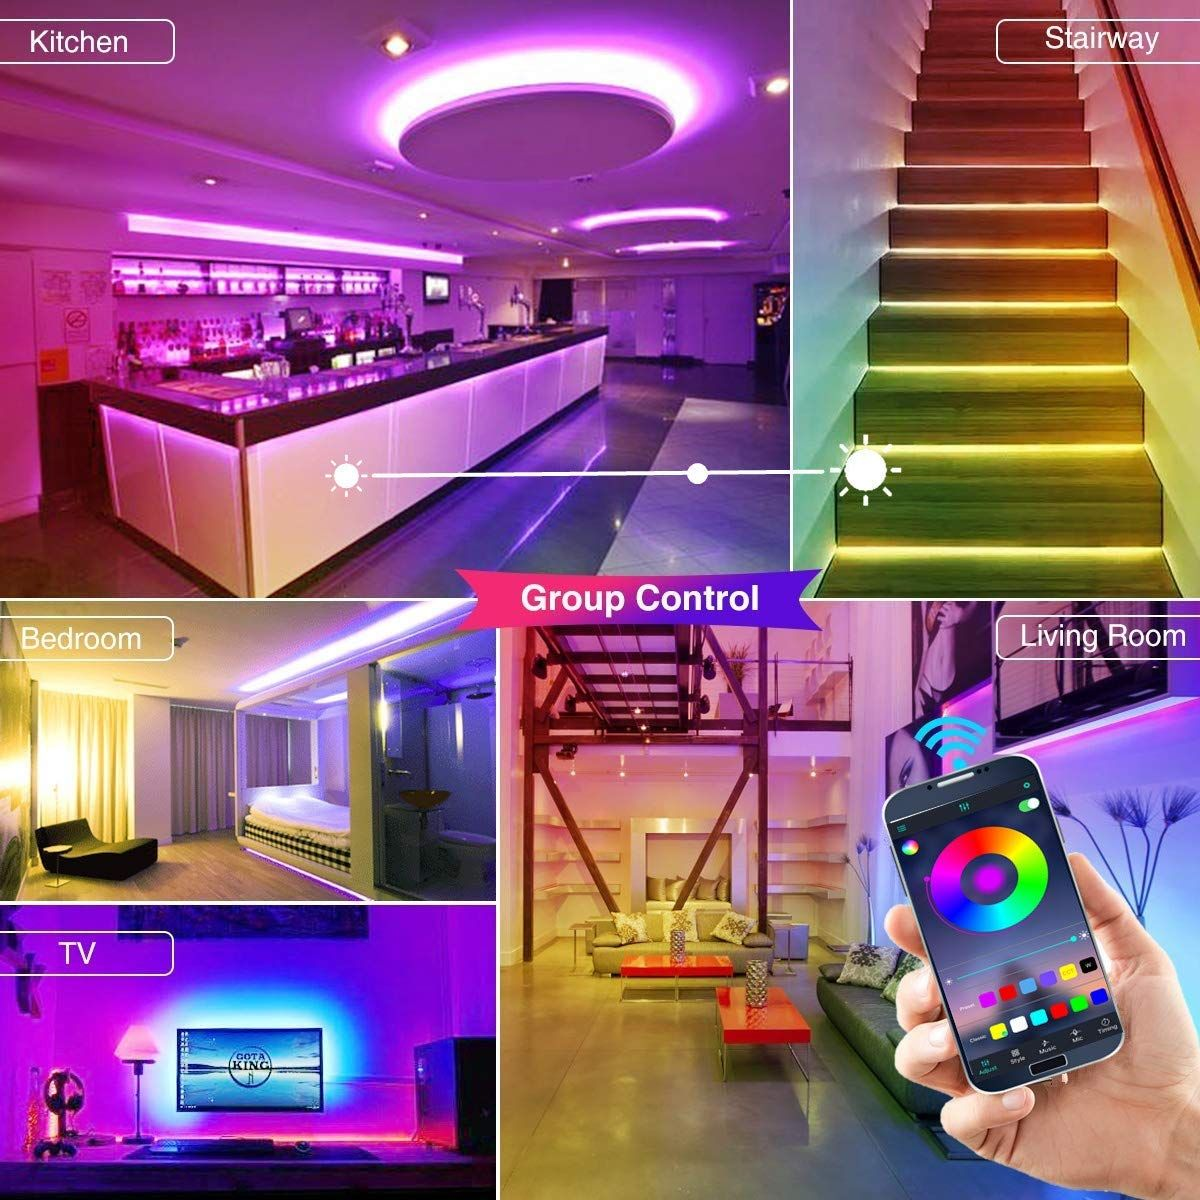 Led Strip Light Sync With Music The App Can Pick Up Music Playing Voice Or Sound And The Light Color Changing Rope Lights Strip Lighting Led Strip Lighting